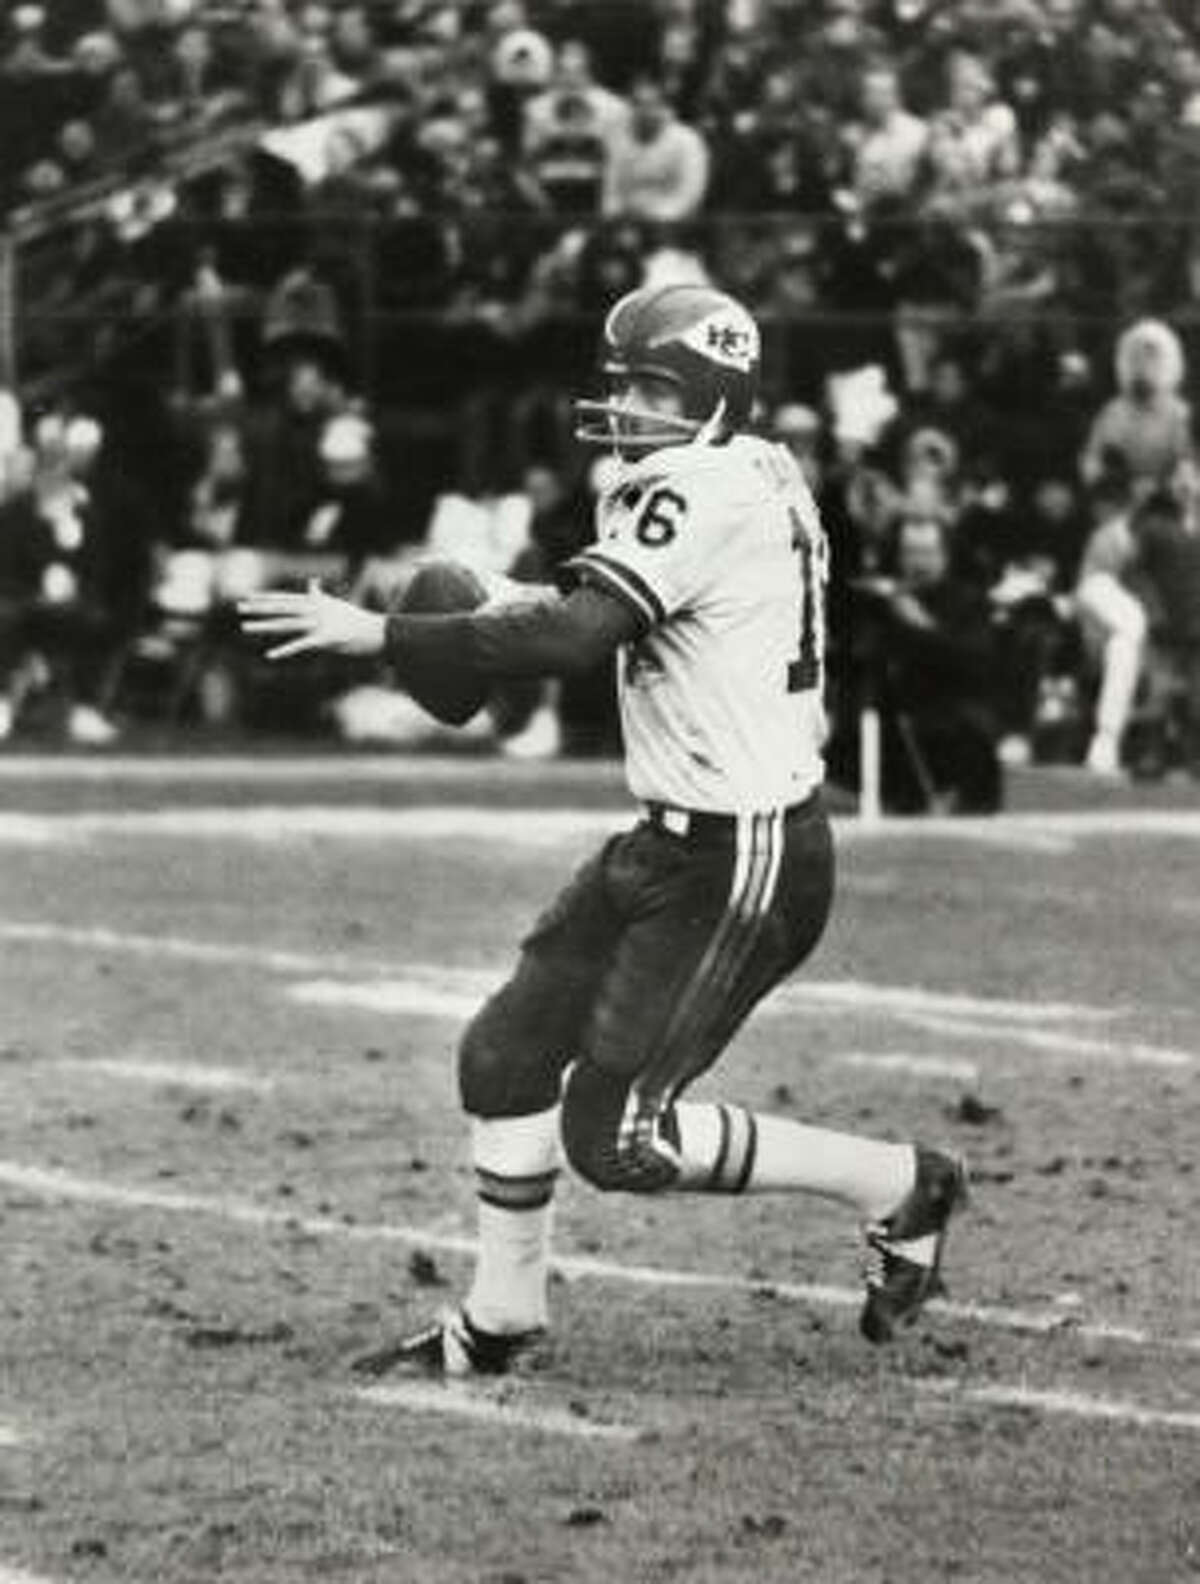 Len Dawson, Kansas City Year: 1974 Age: 39 Record: 3-5 Completions: 138 Attempts: 235 Completion pct: 58.7% Yards: 1,573 Touchdowns: 7 Interceptions: 13 Year: 1975 Age: 40 Record: 1-4 Completions: 93 Attempts: 130 Completion pct: 66.4% Yards: 1,095 Touchdowns: 5 Interceptions: 4